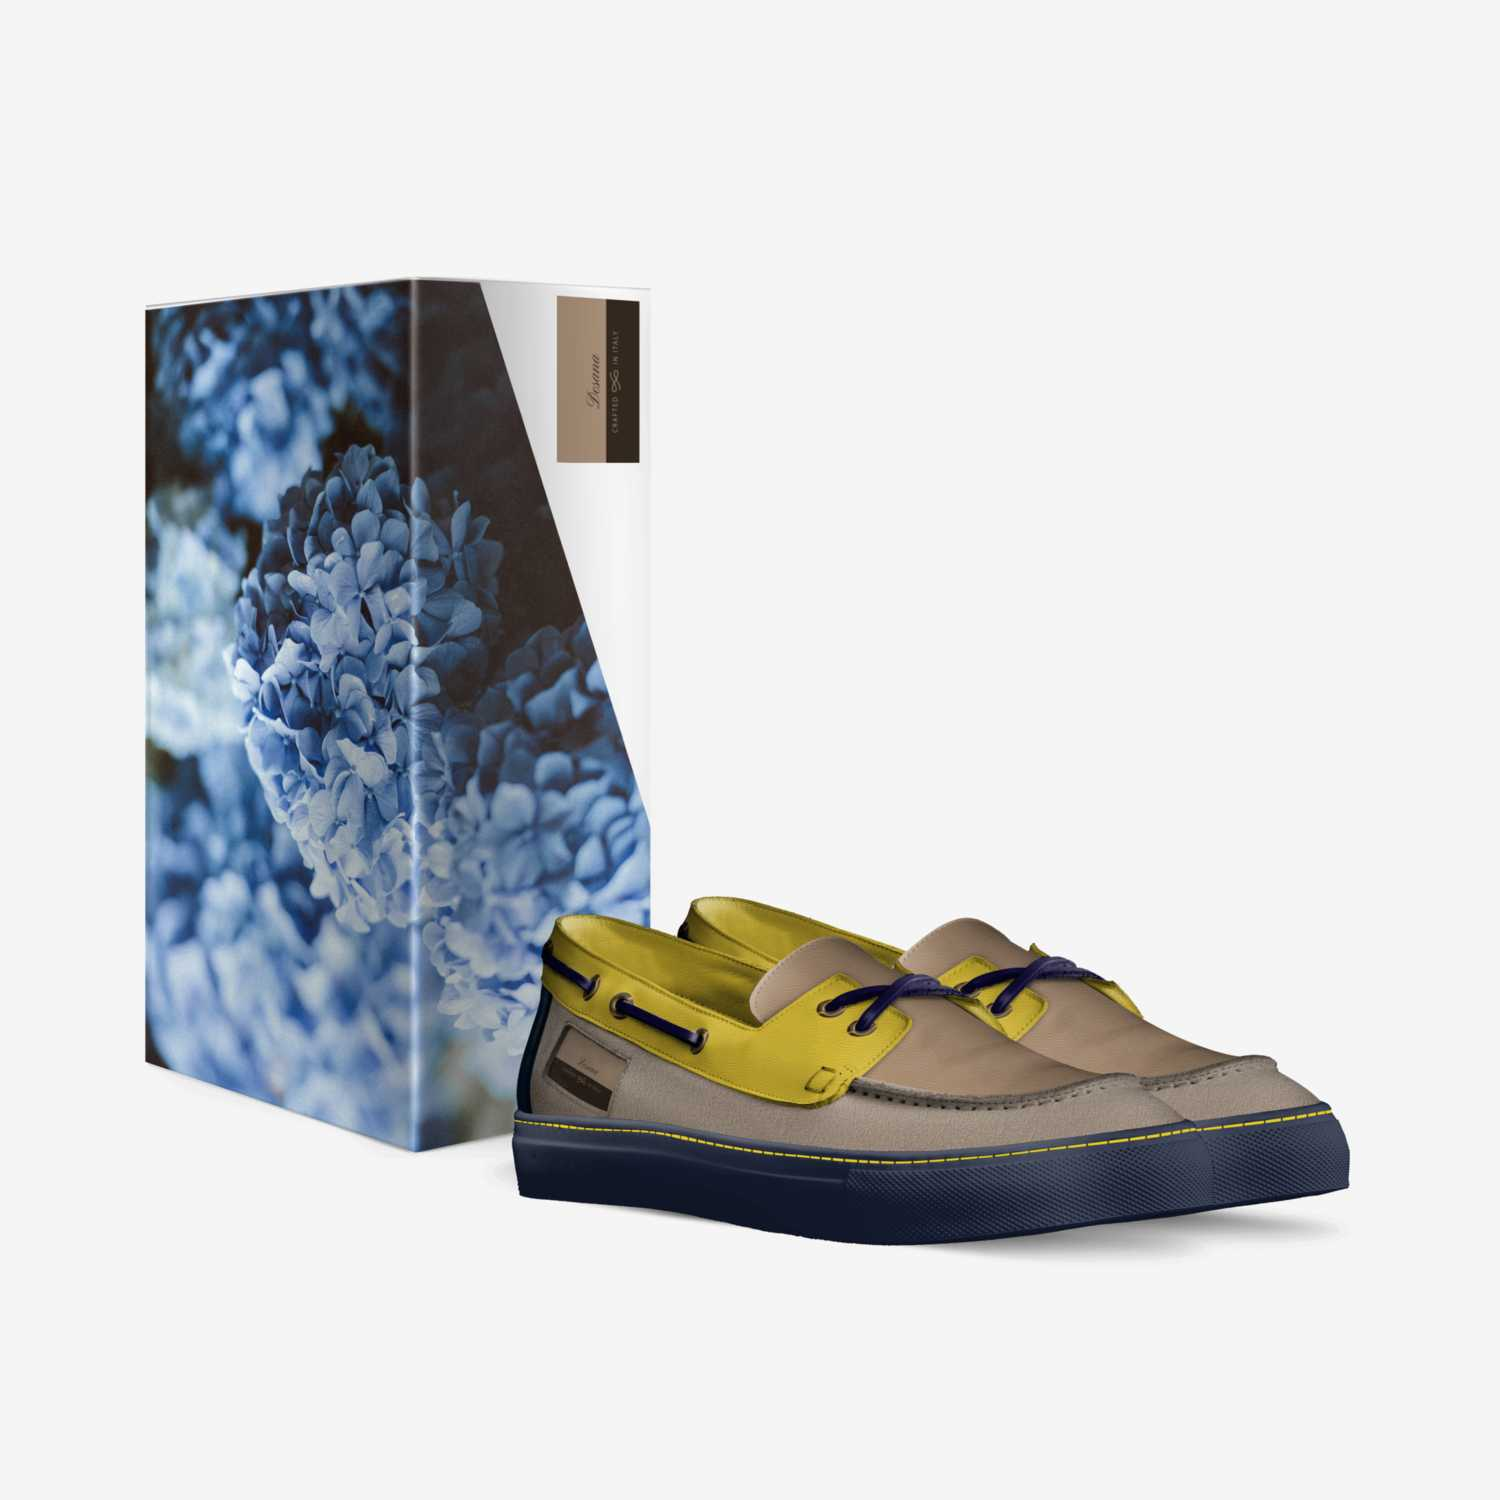 Desana custom made in Italy shoes by Darel Wesley | Box view